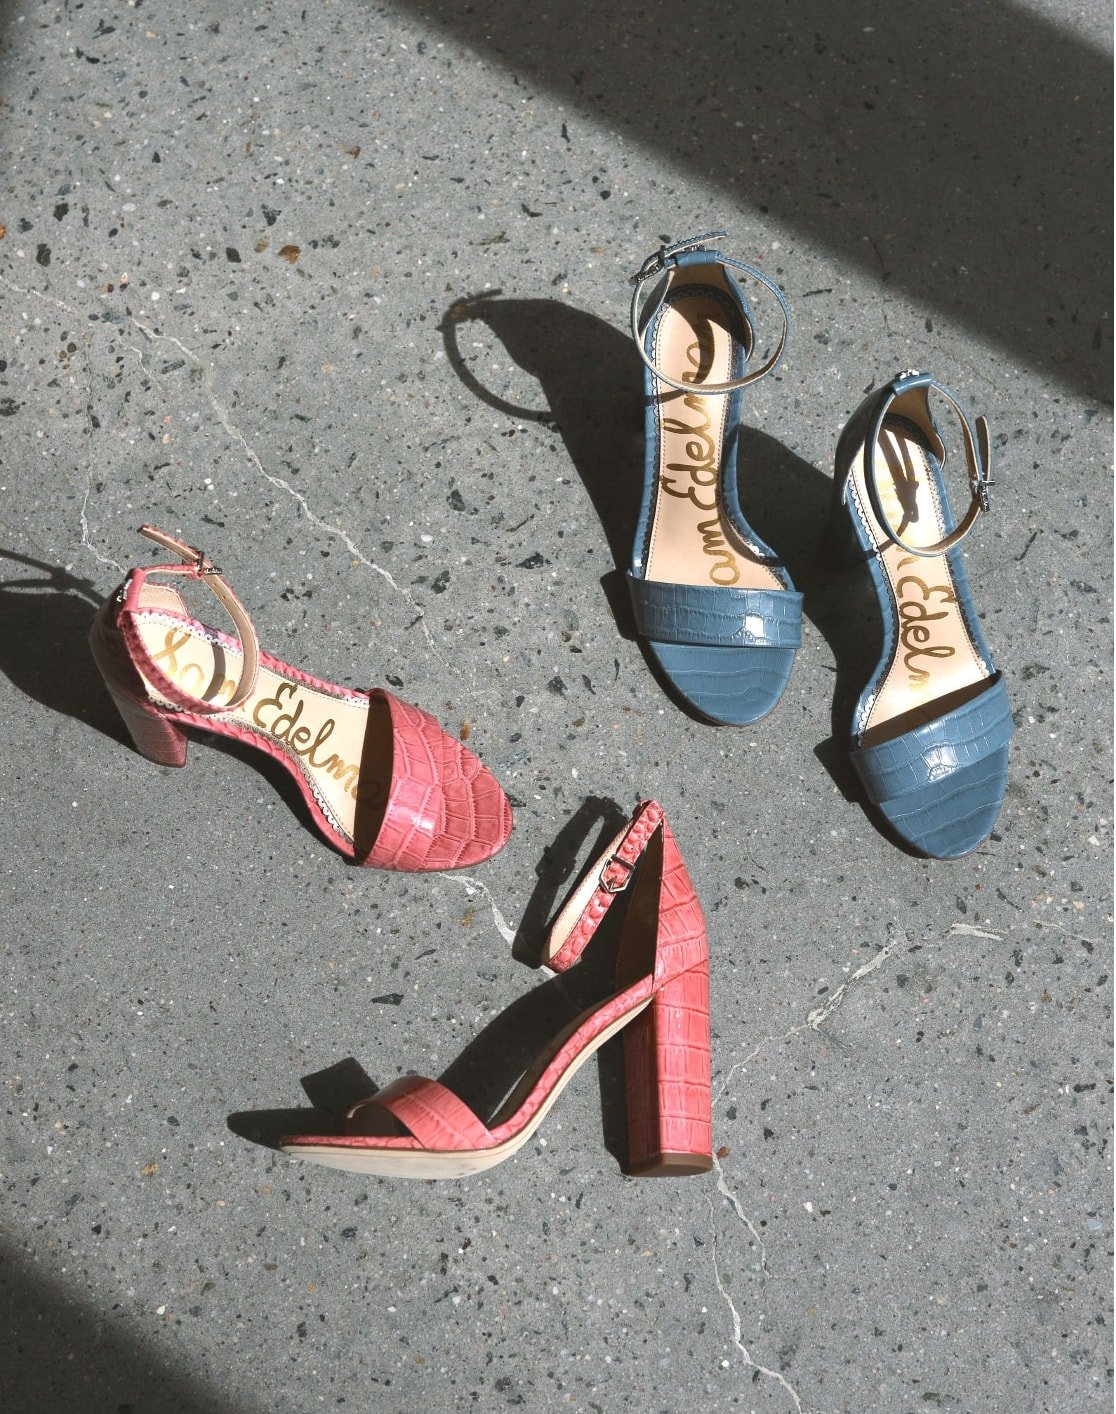 Sam Edelman's comfortable Yaro sandal is a wardrobe must with an ankle strap and a block heel